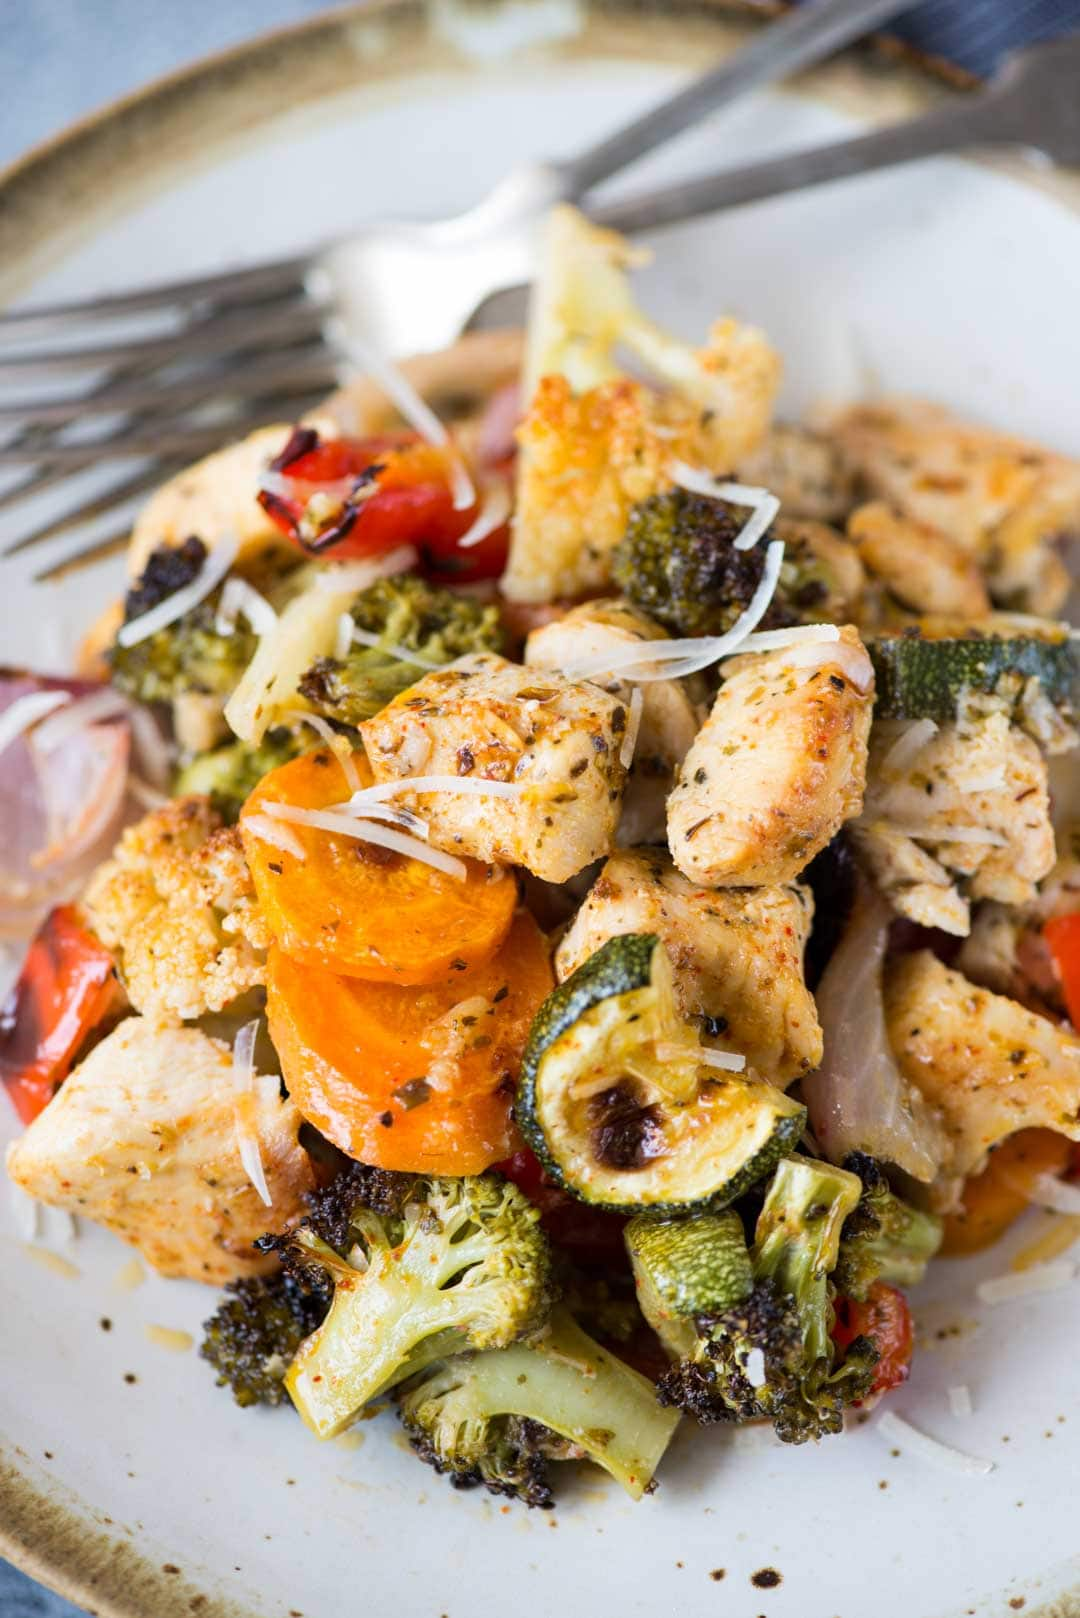 Oven Roasted Vegetables with Chicken is vegetables, chicken tossed in butter, Italian seasoning and roasted until charred and tender. Roasted vegetables are super easy to make and healthy too.